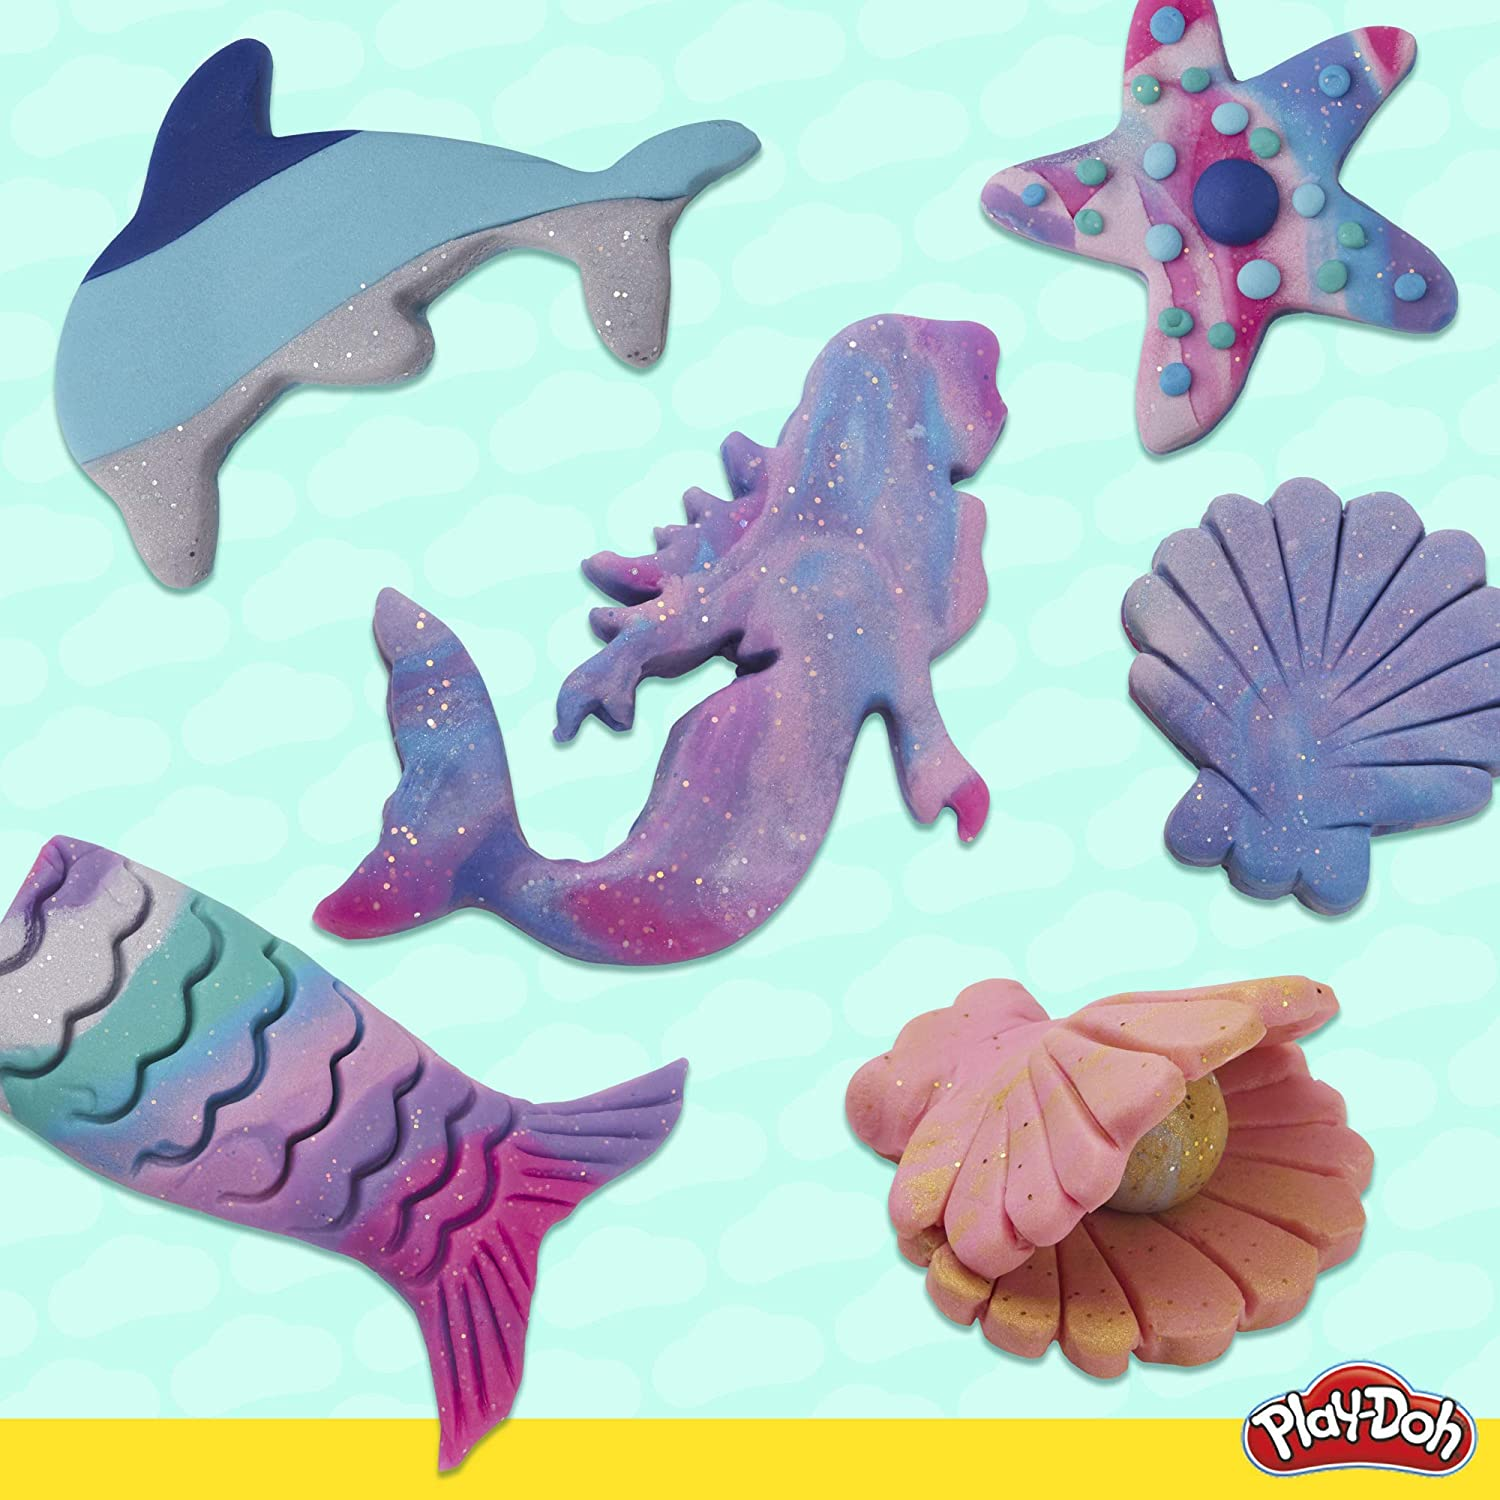 Play-Doh Bulk Mermaid Colors 13-Pack of Non-Toxic Modeling Compound with Sparkle and Metallic Colors Plus 5 Tools Exclusive